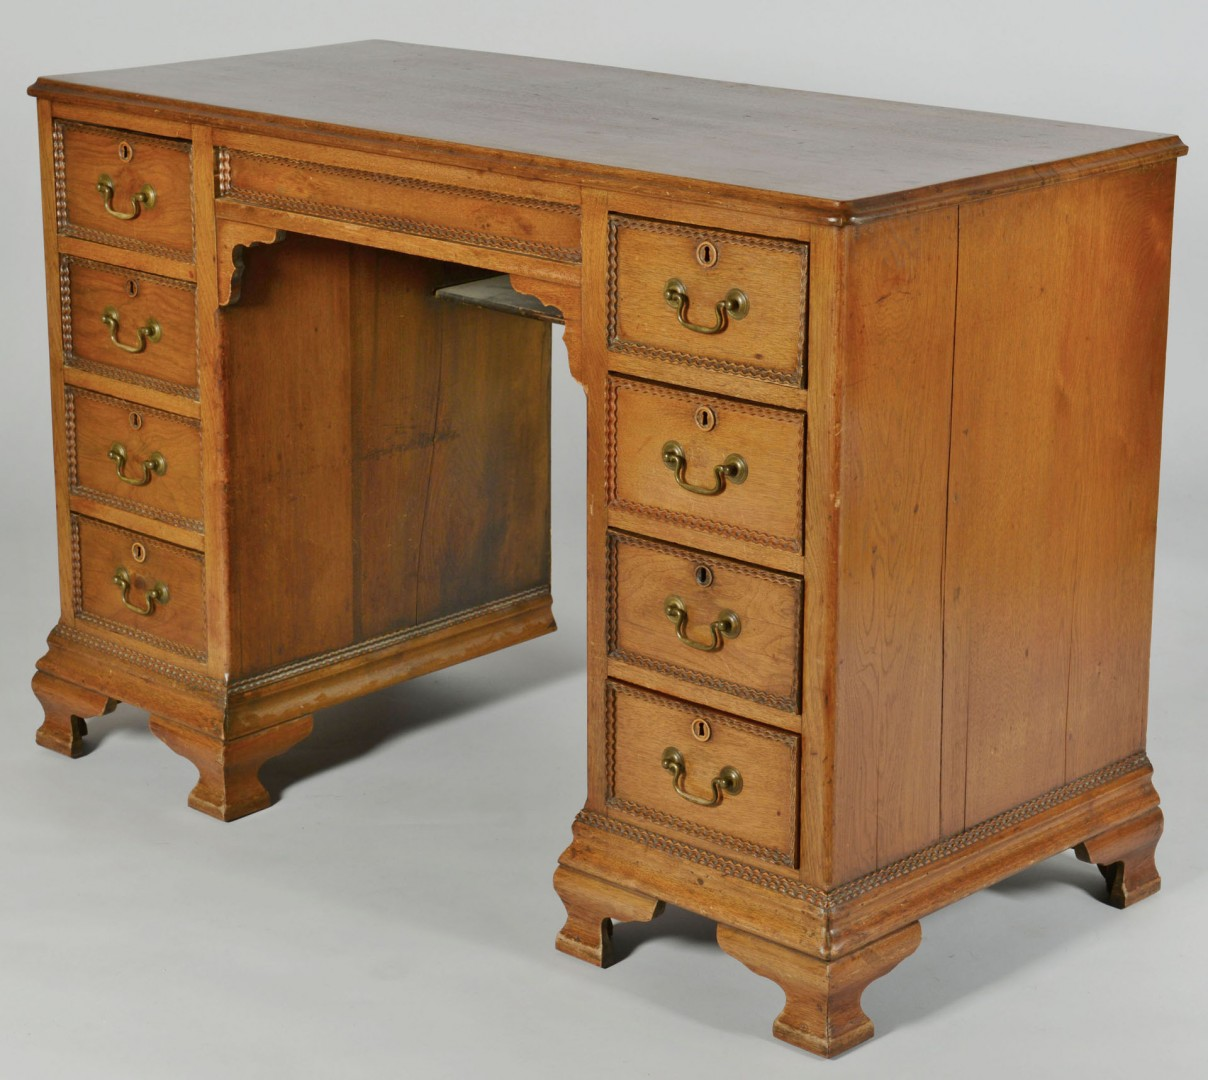 Lot 574: Late 19th century Doctor's Desk, Knoxville history